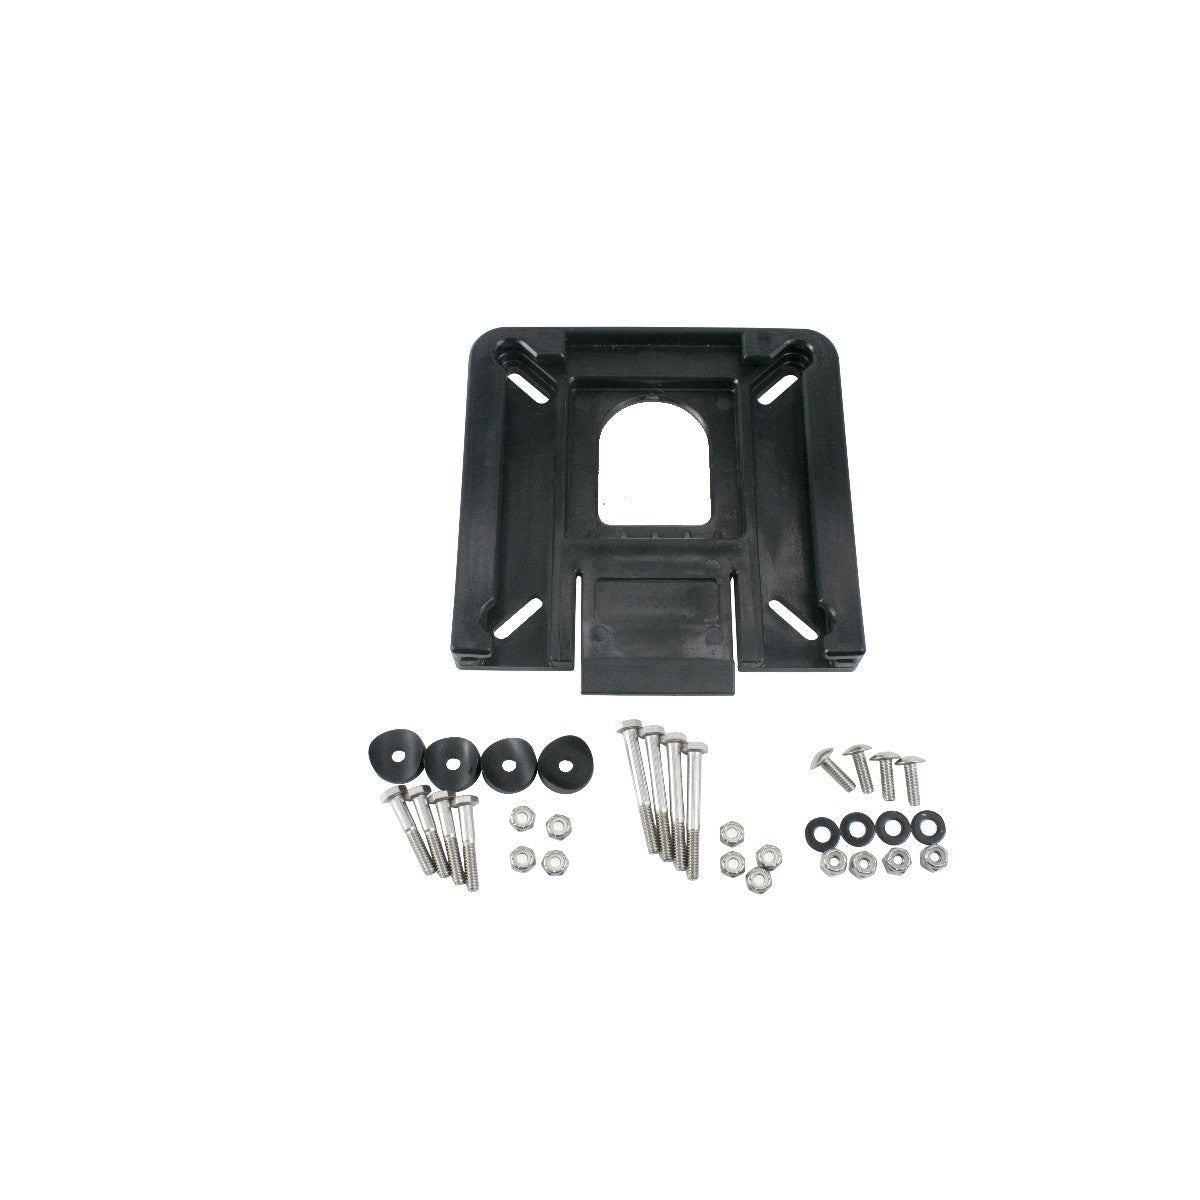 NuCanoe #3312 Quick Release Kit for 360 Kayak Seats